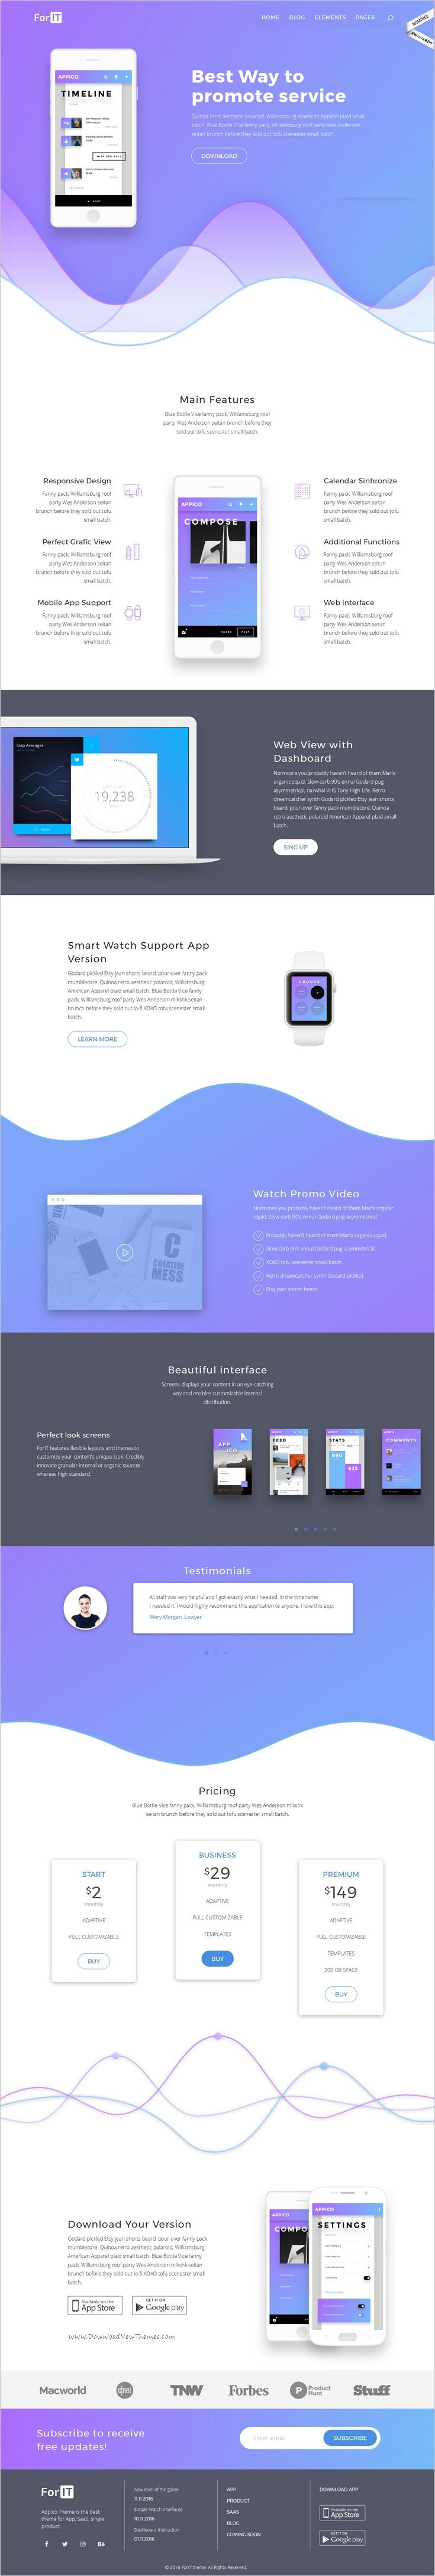 ForIT is an awesome premium #WordPress Theme, designed specially for #IT #startup business, Mobile #App, Software, Saas Service or Product development companies websites download now➩ https://themeforest.net/item/forit-startup-wordpress-theme-for-software-app-and-product/19183016?ref=Datasata